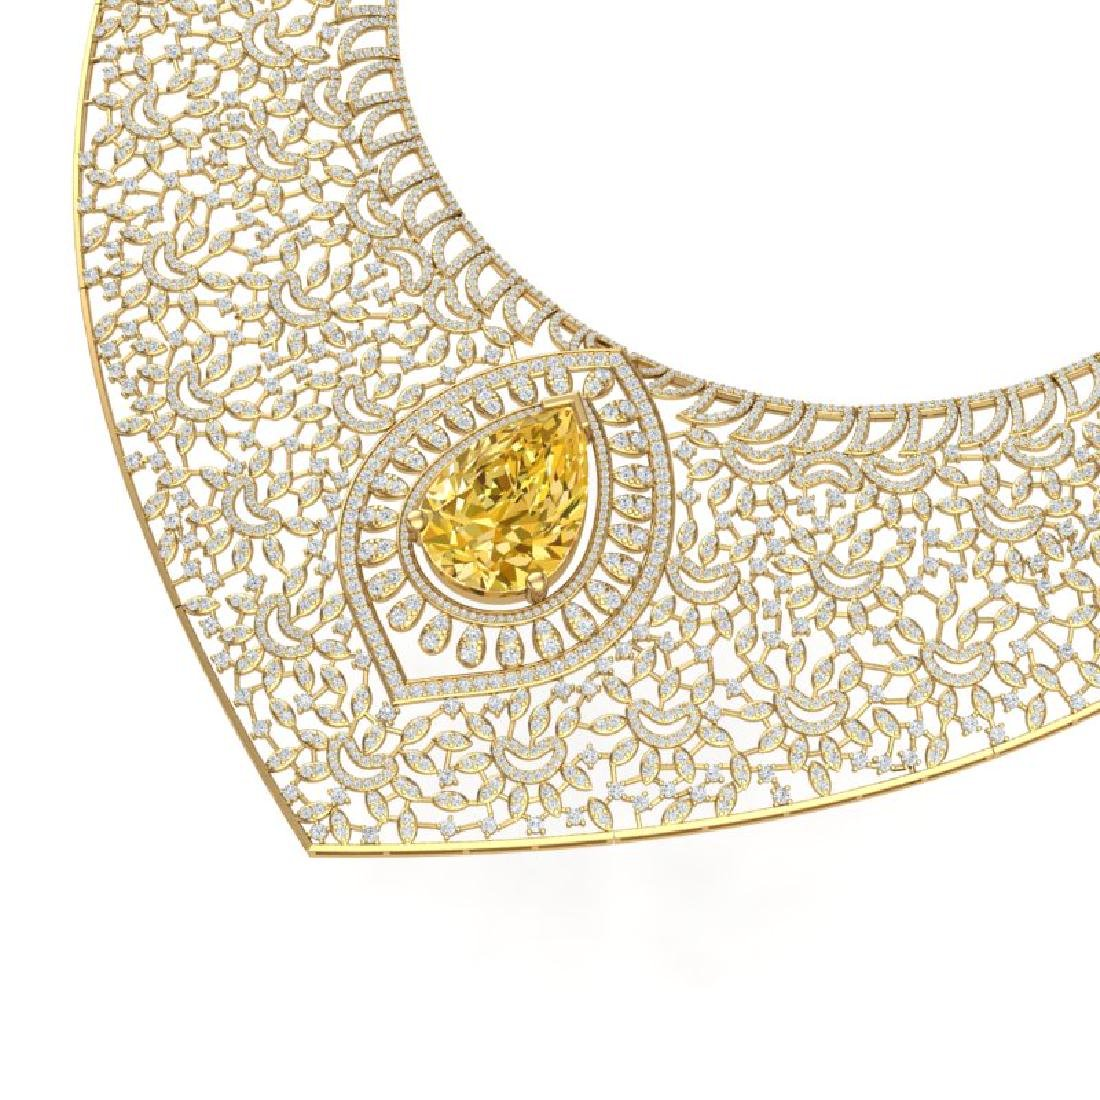 59.27 CTW Royalty Canary Citrine & VS Diamond Necklace